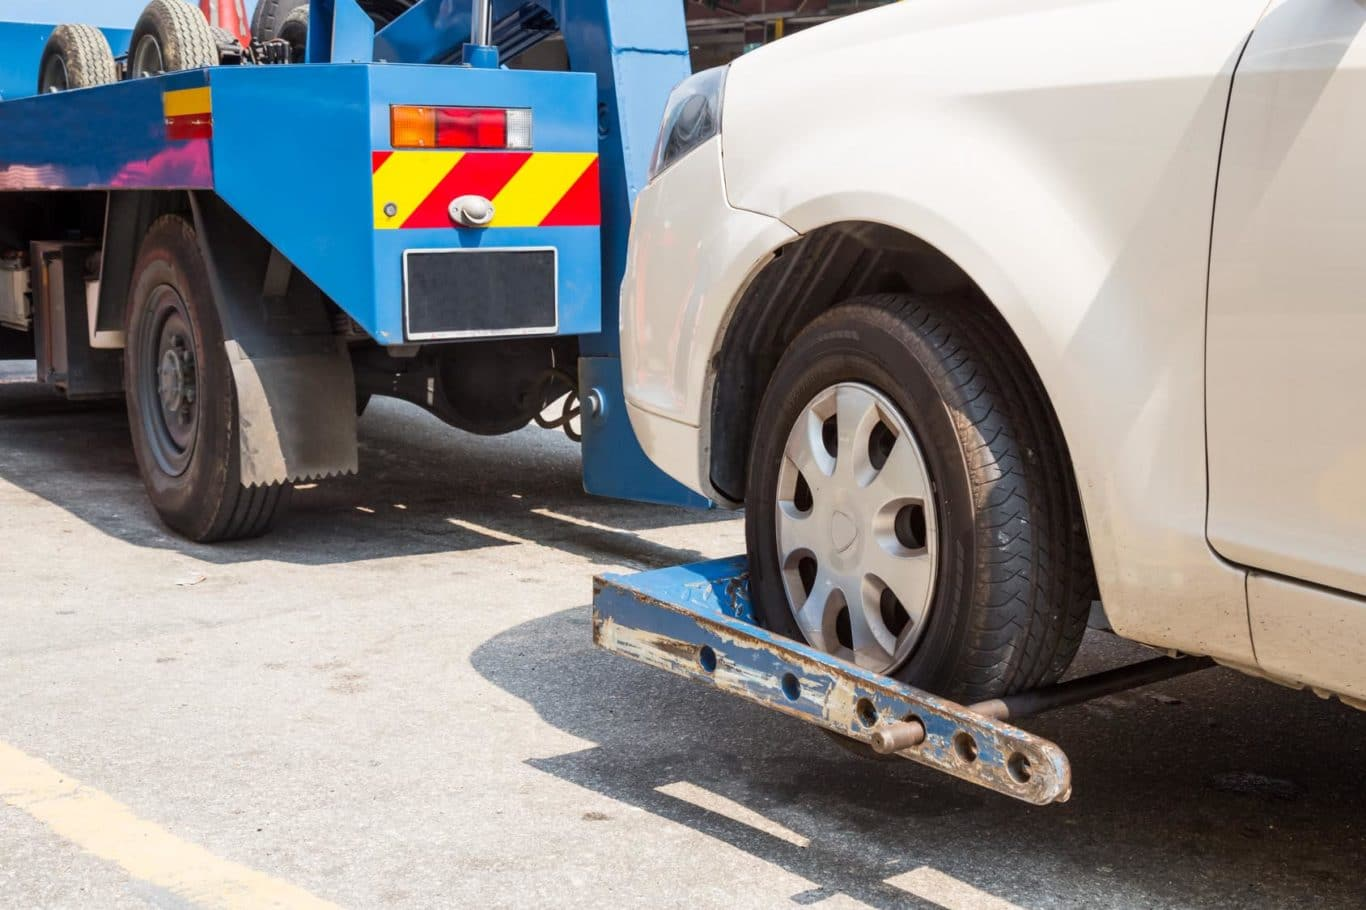 Islandbridge expert Car Towing services